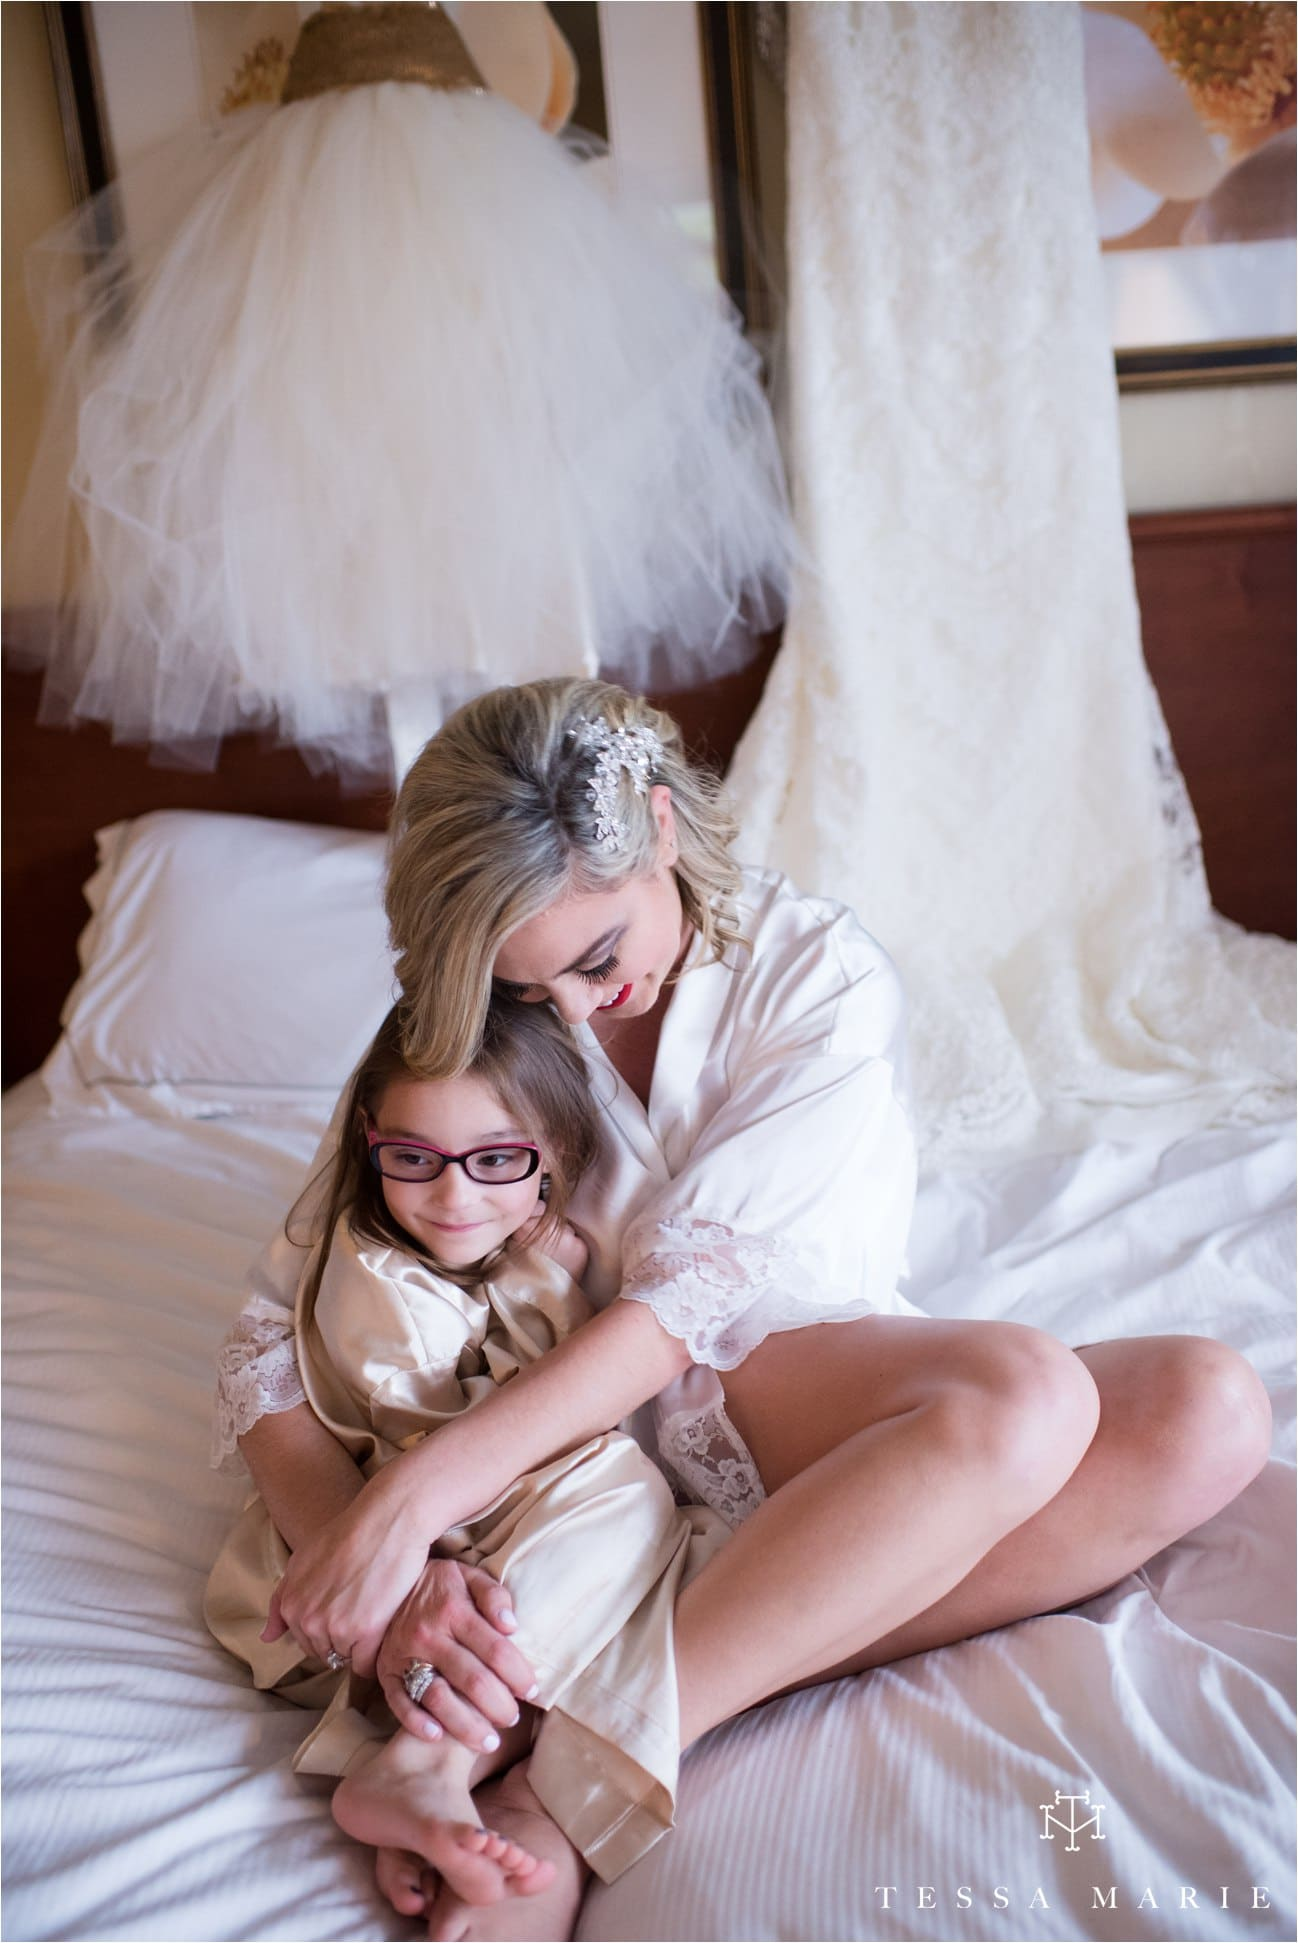 tessa_marie_brickyard_marietta_new_years_wedding_pictures_candid_emotional_wedding_portraits_0021